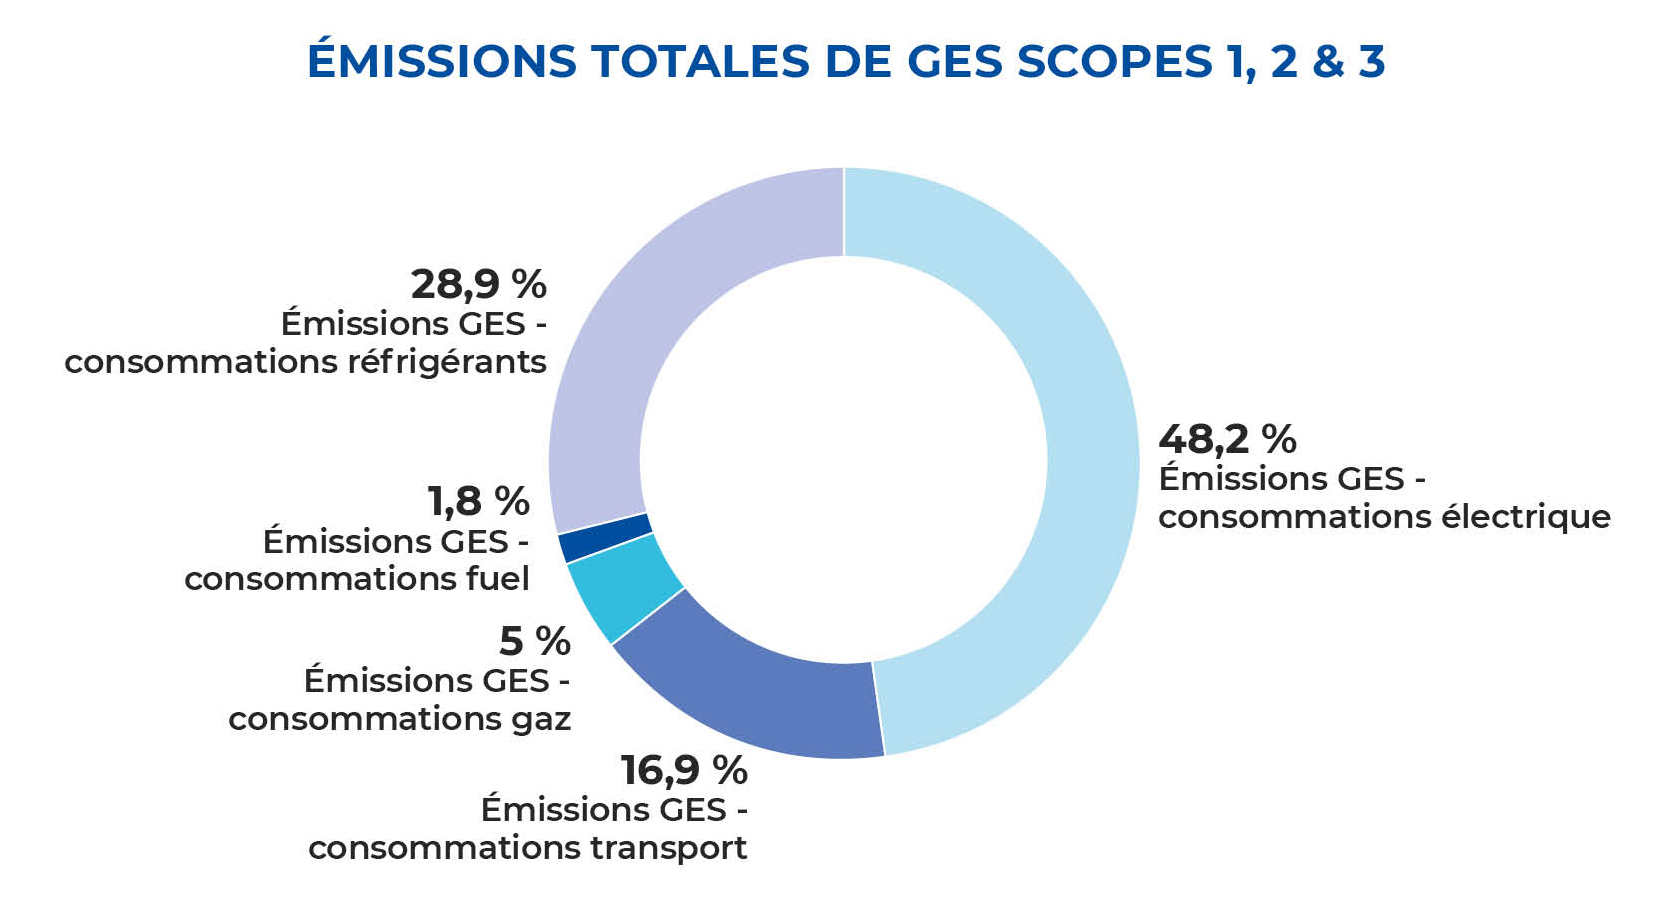 IMG-GES-emissions-totales